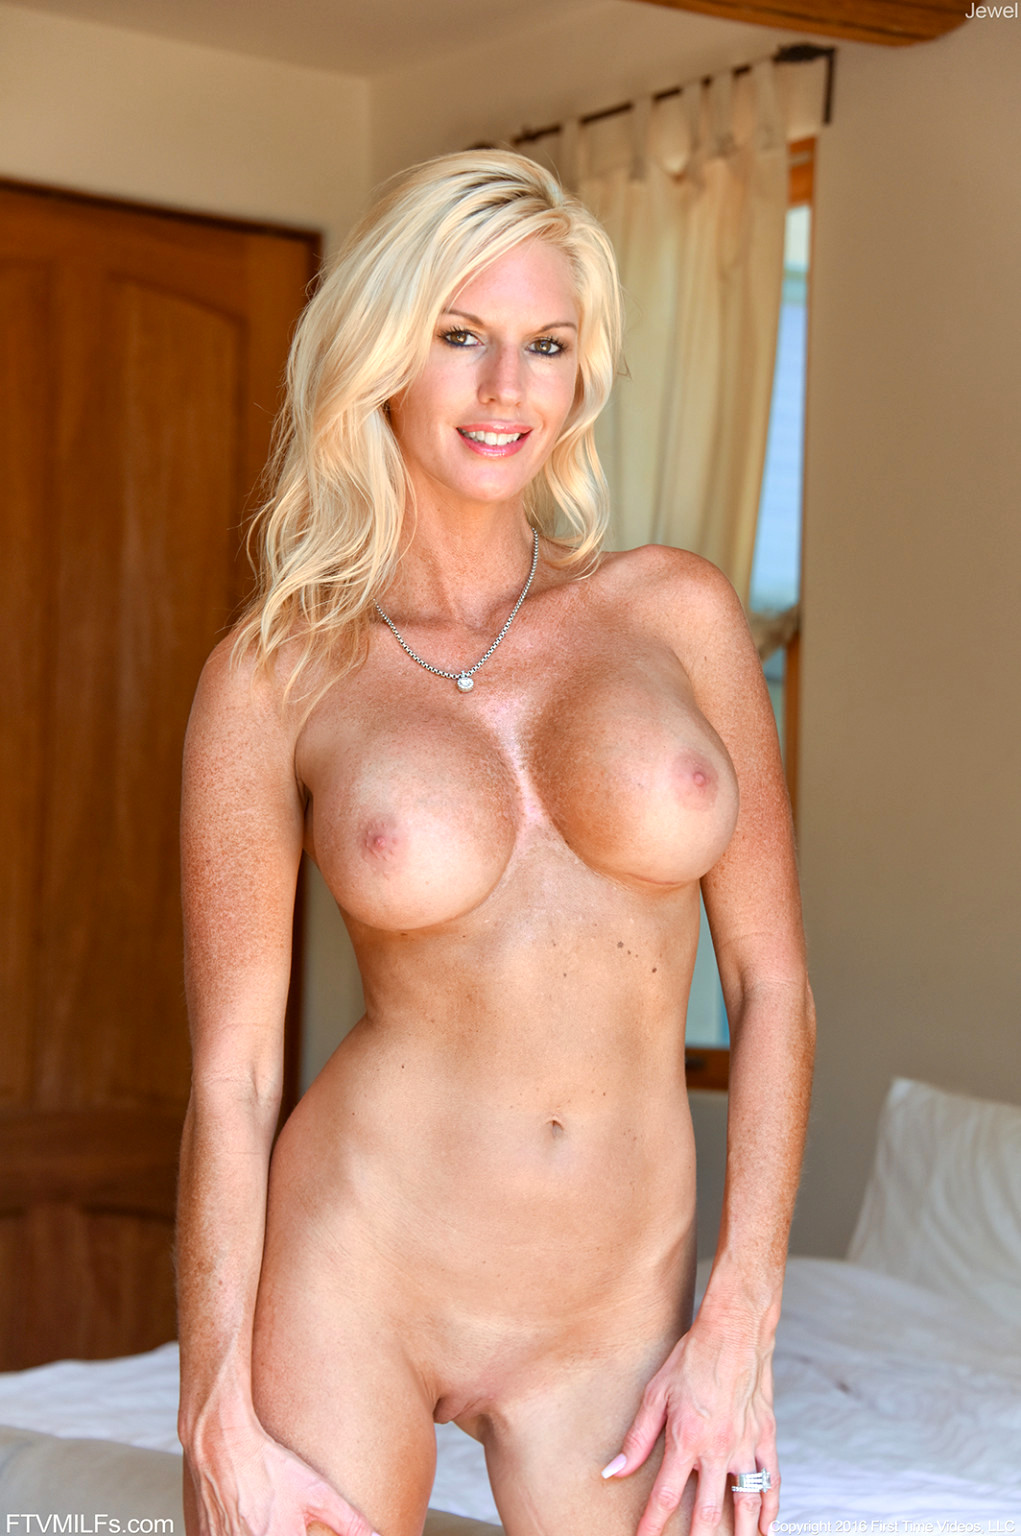 Blonde Milf Gallery